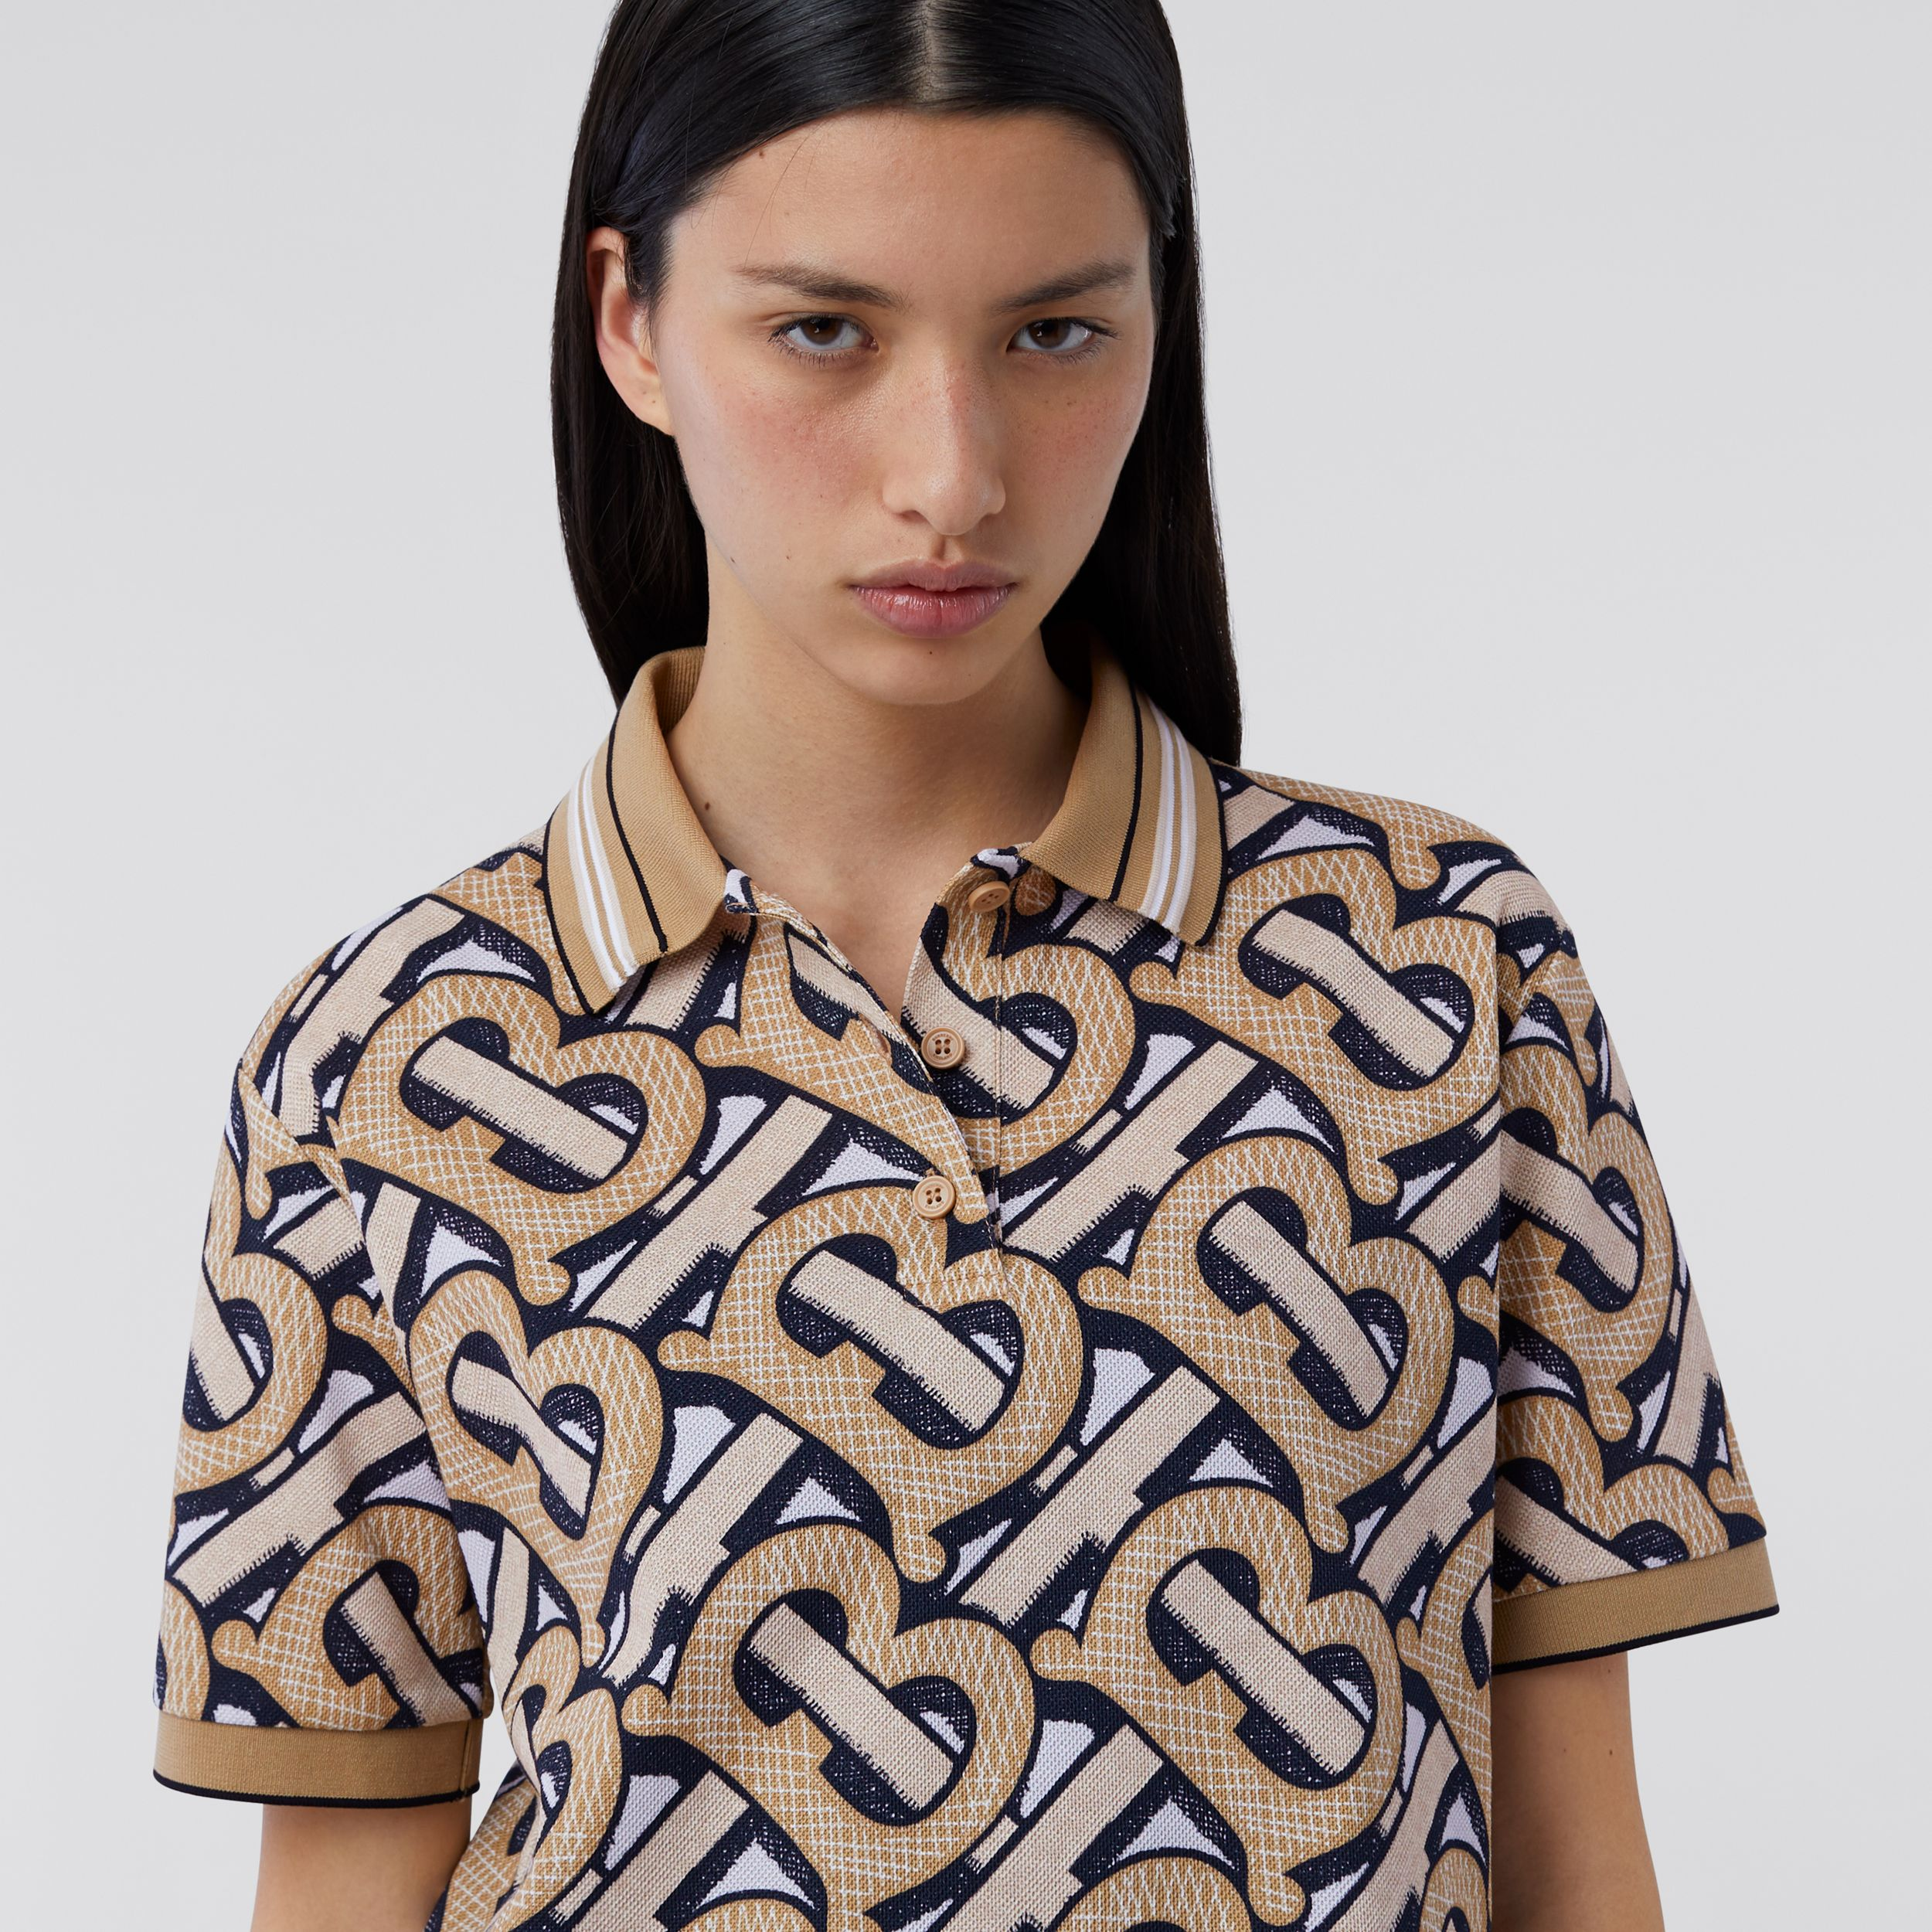 Monogram Print Cotton Piqué Polo Shirt – Unisex in Dark Beige | Burberry - 2